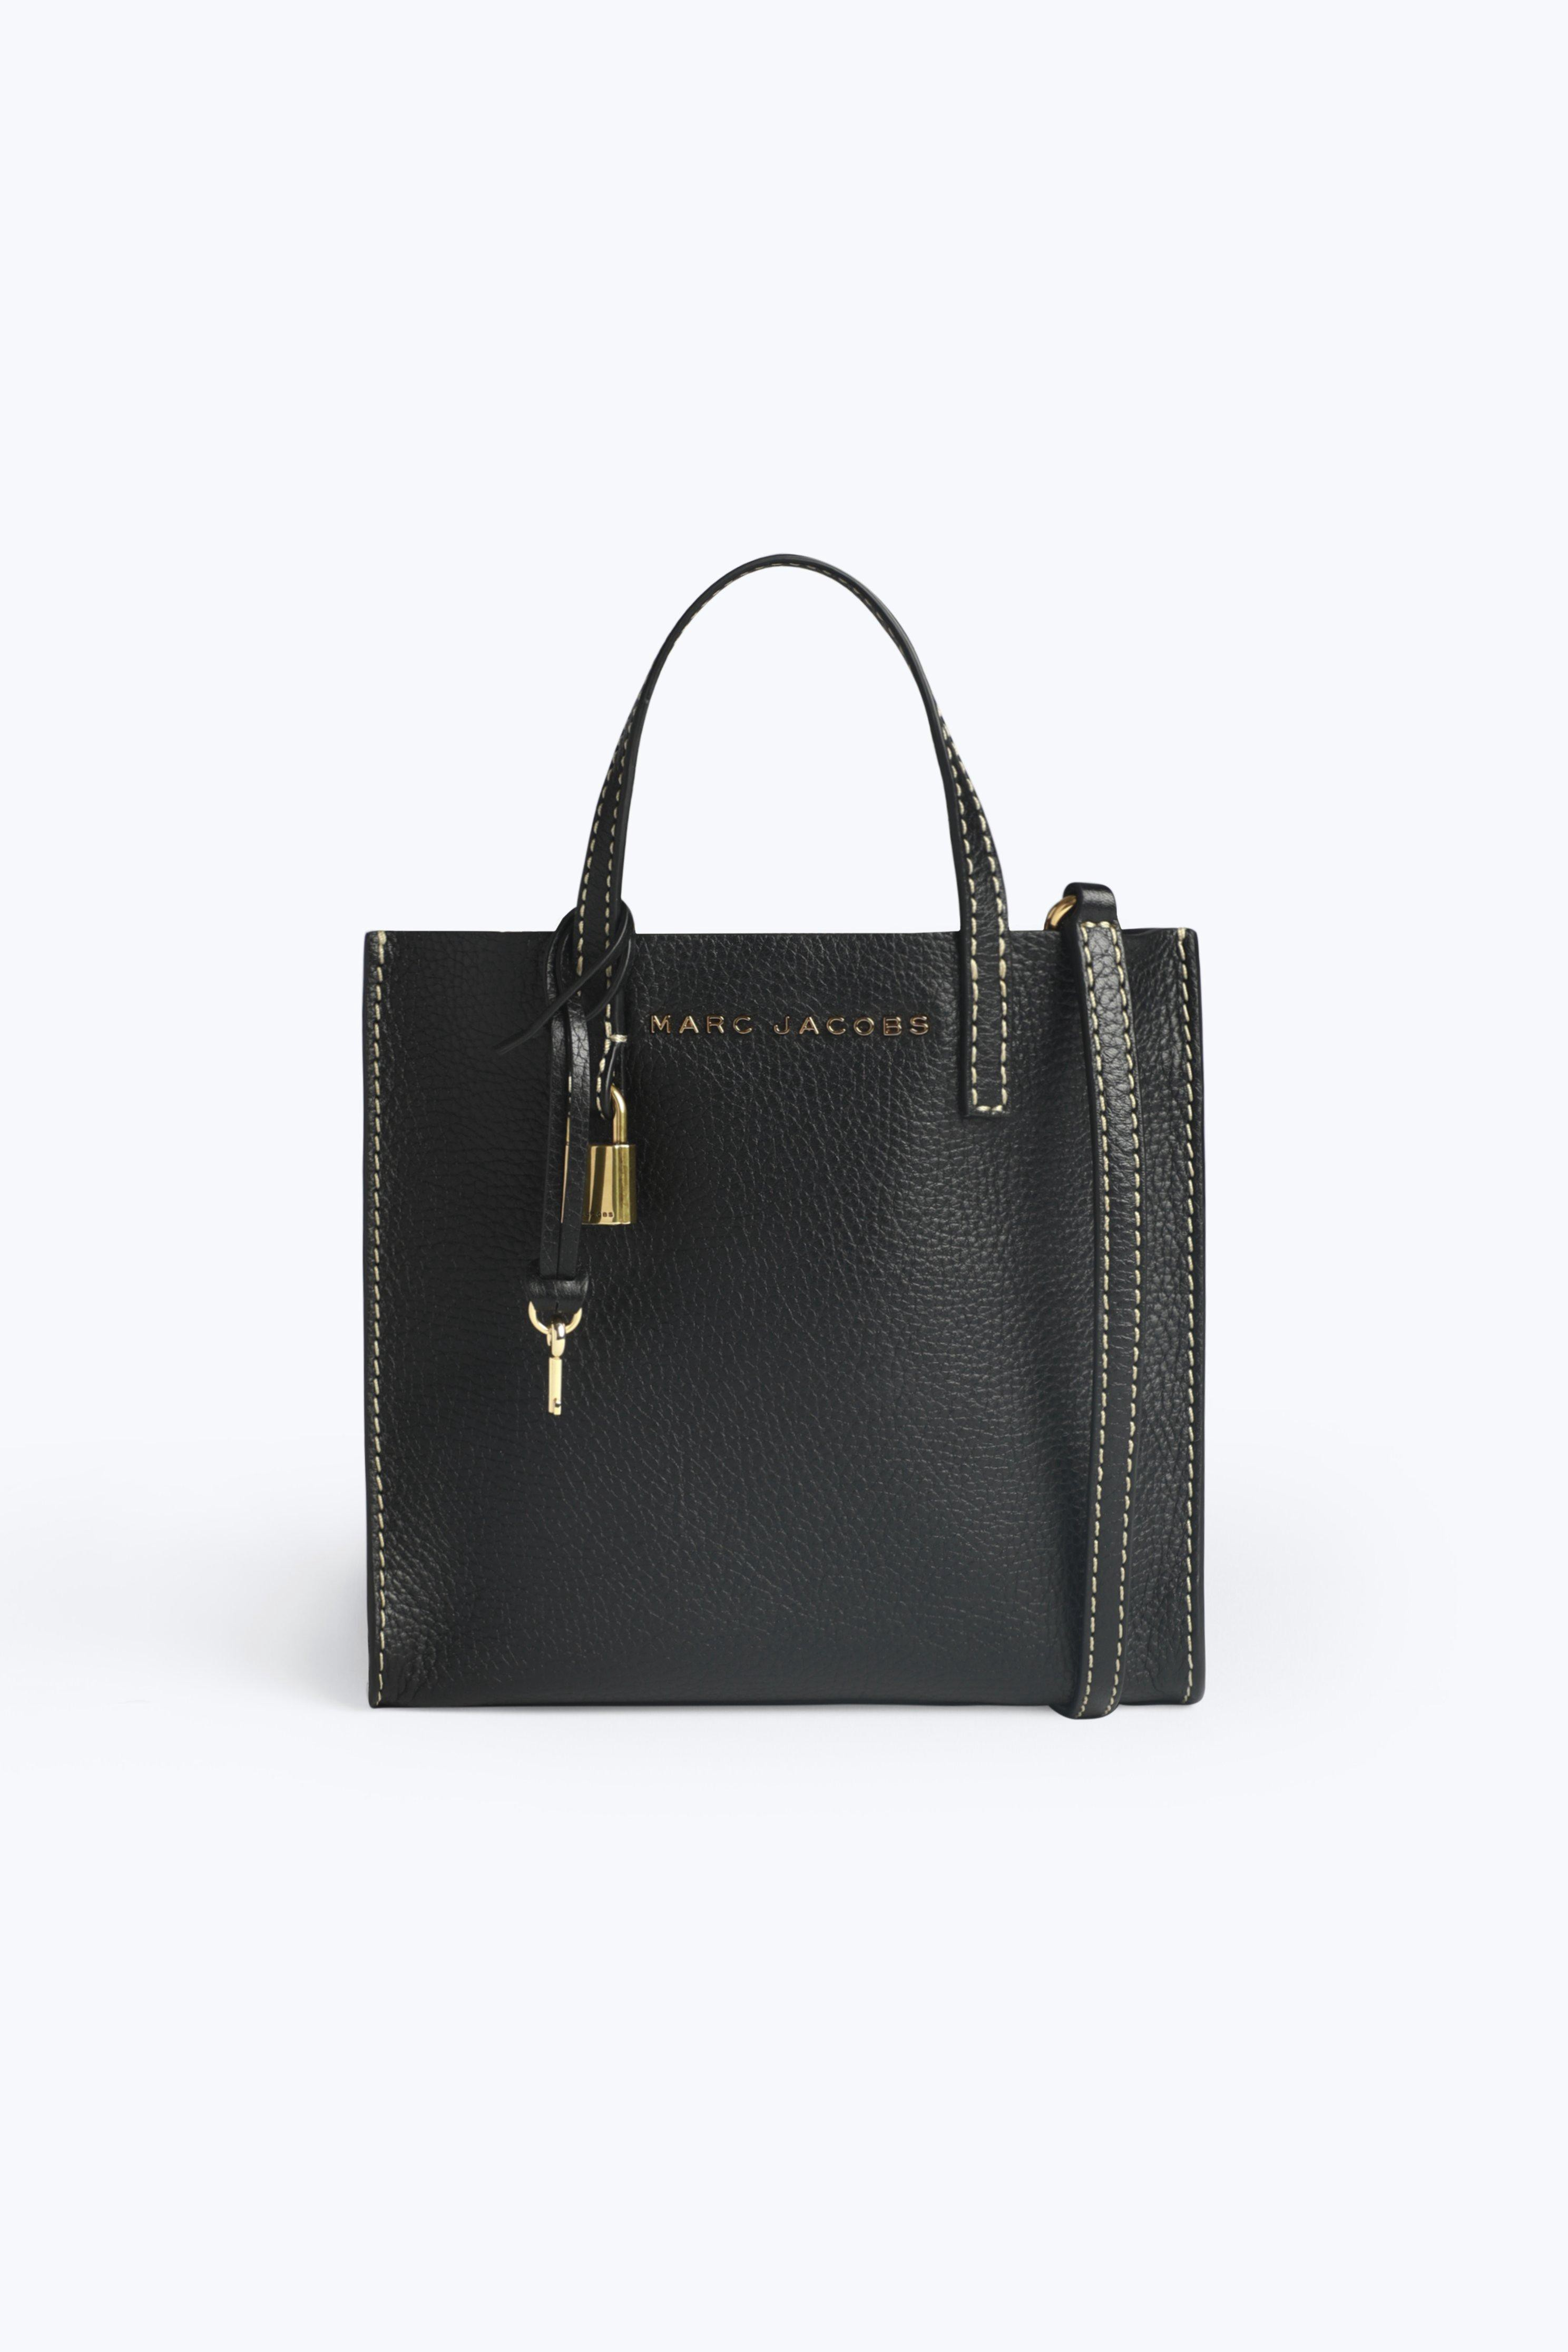 25b3f80f57924 MARC JACOBS The Mini Grind Bag.  marcjacobs  bags  shoulder bags  leather   crossbody